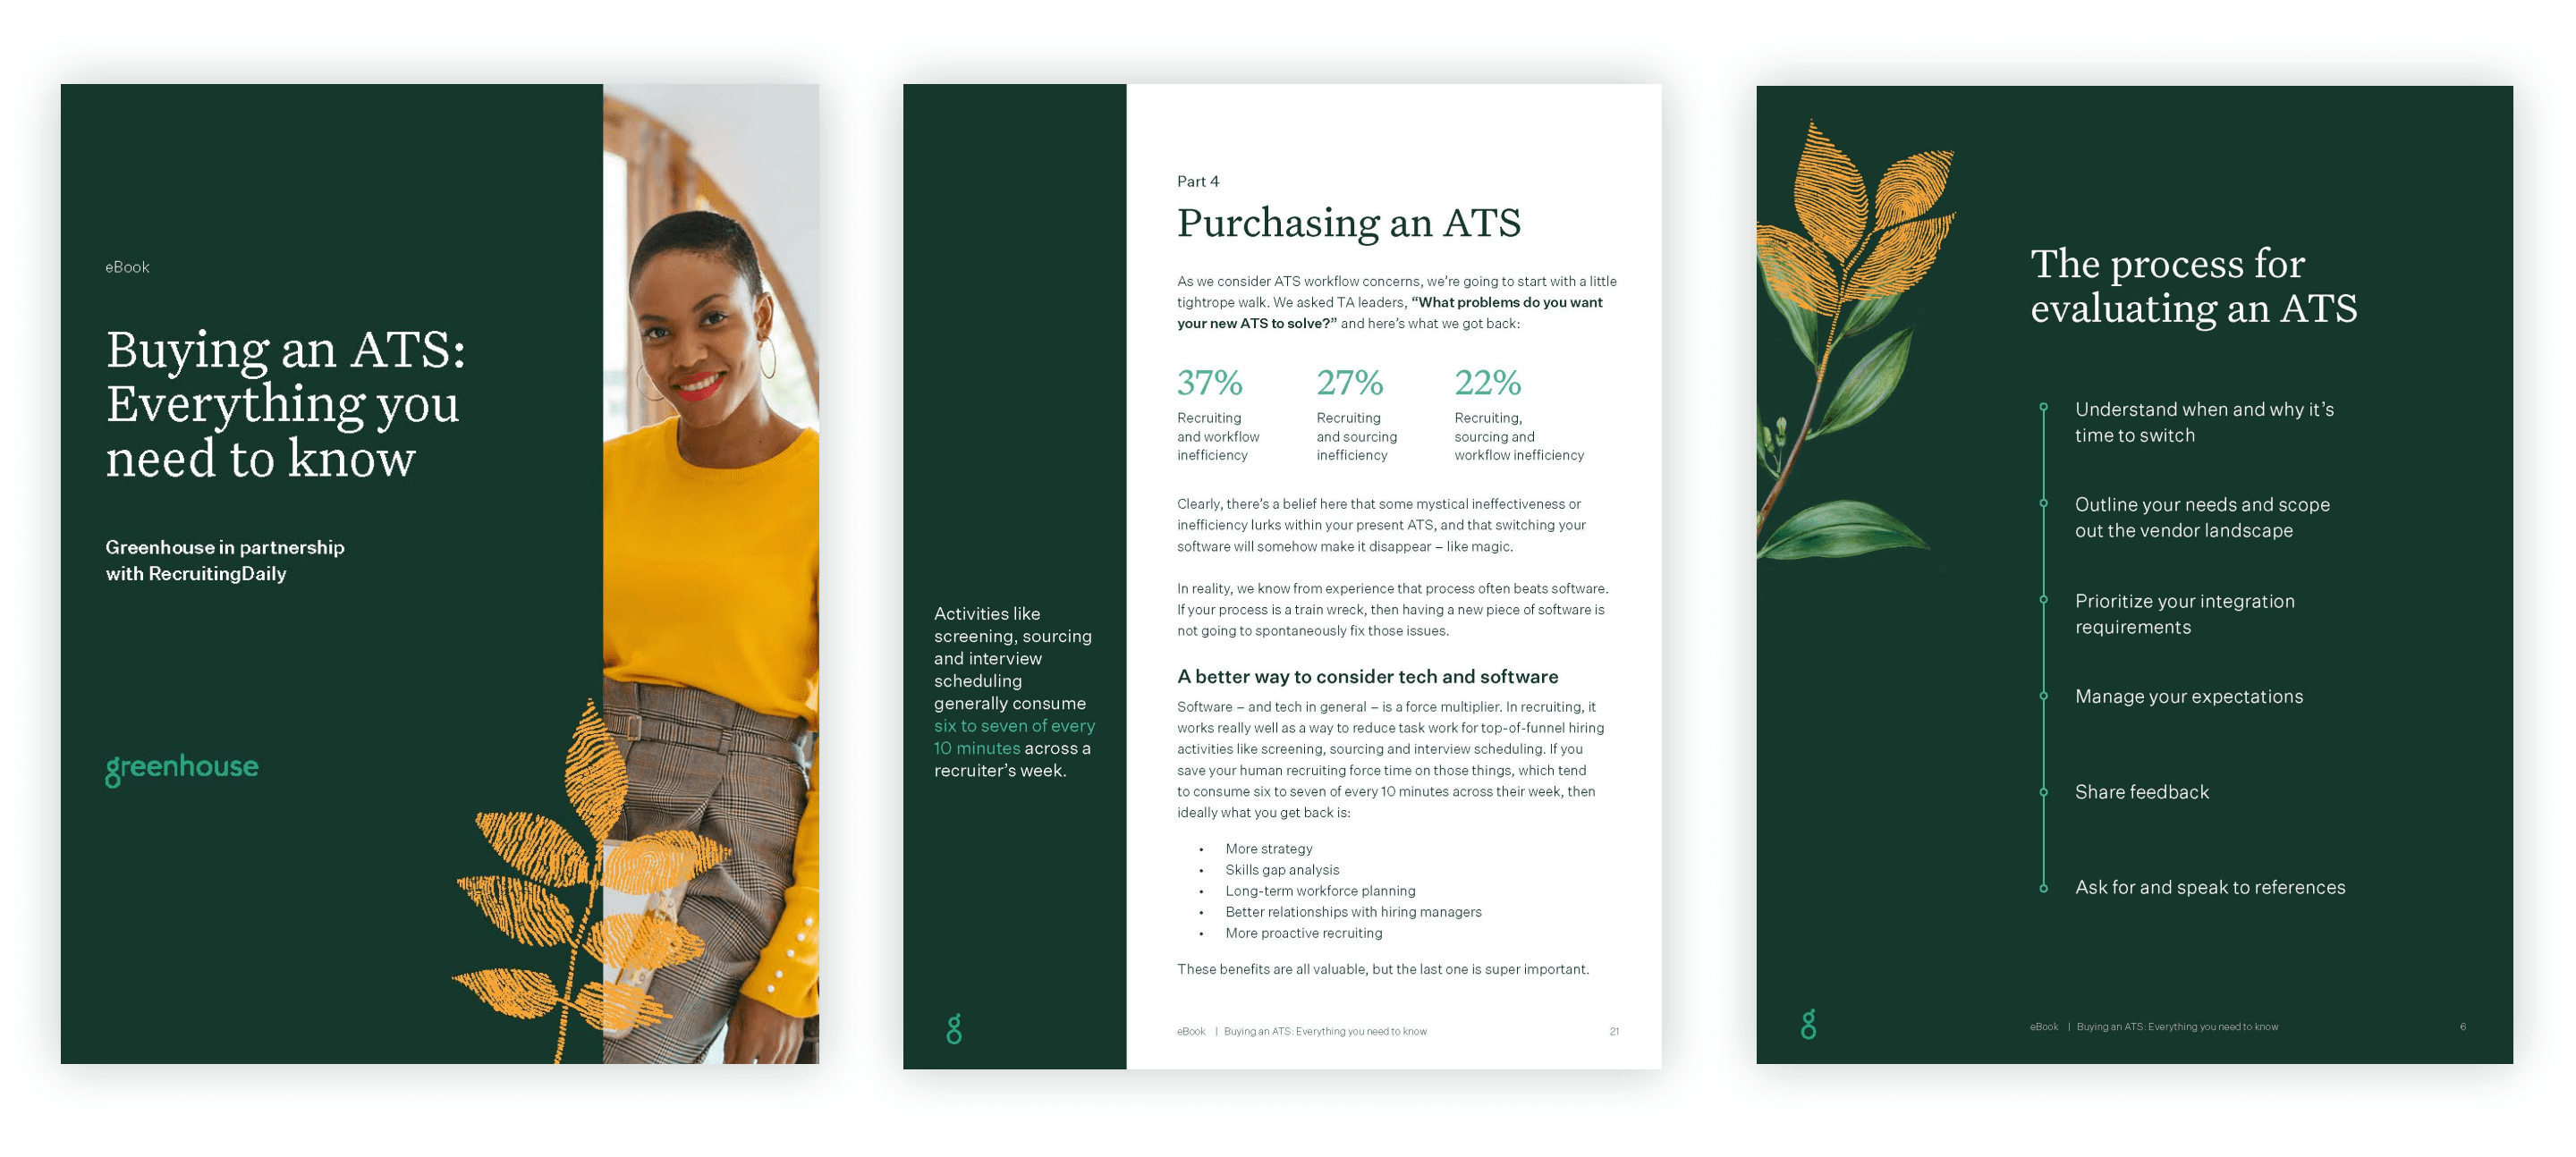 Example pages of Buying an ATS: Everything you need to know